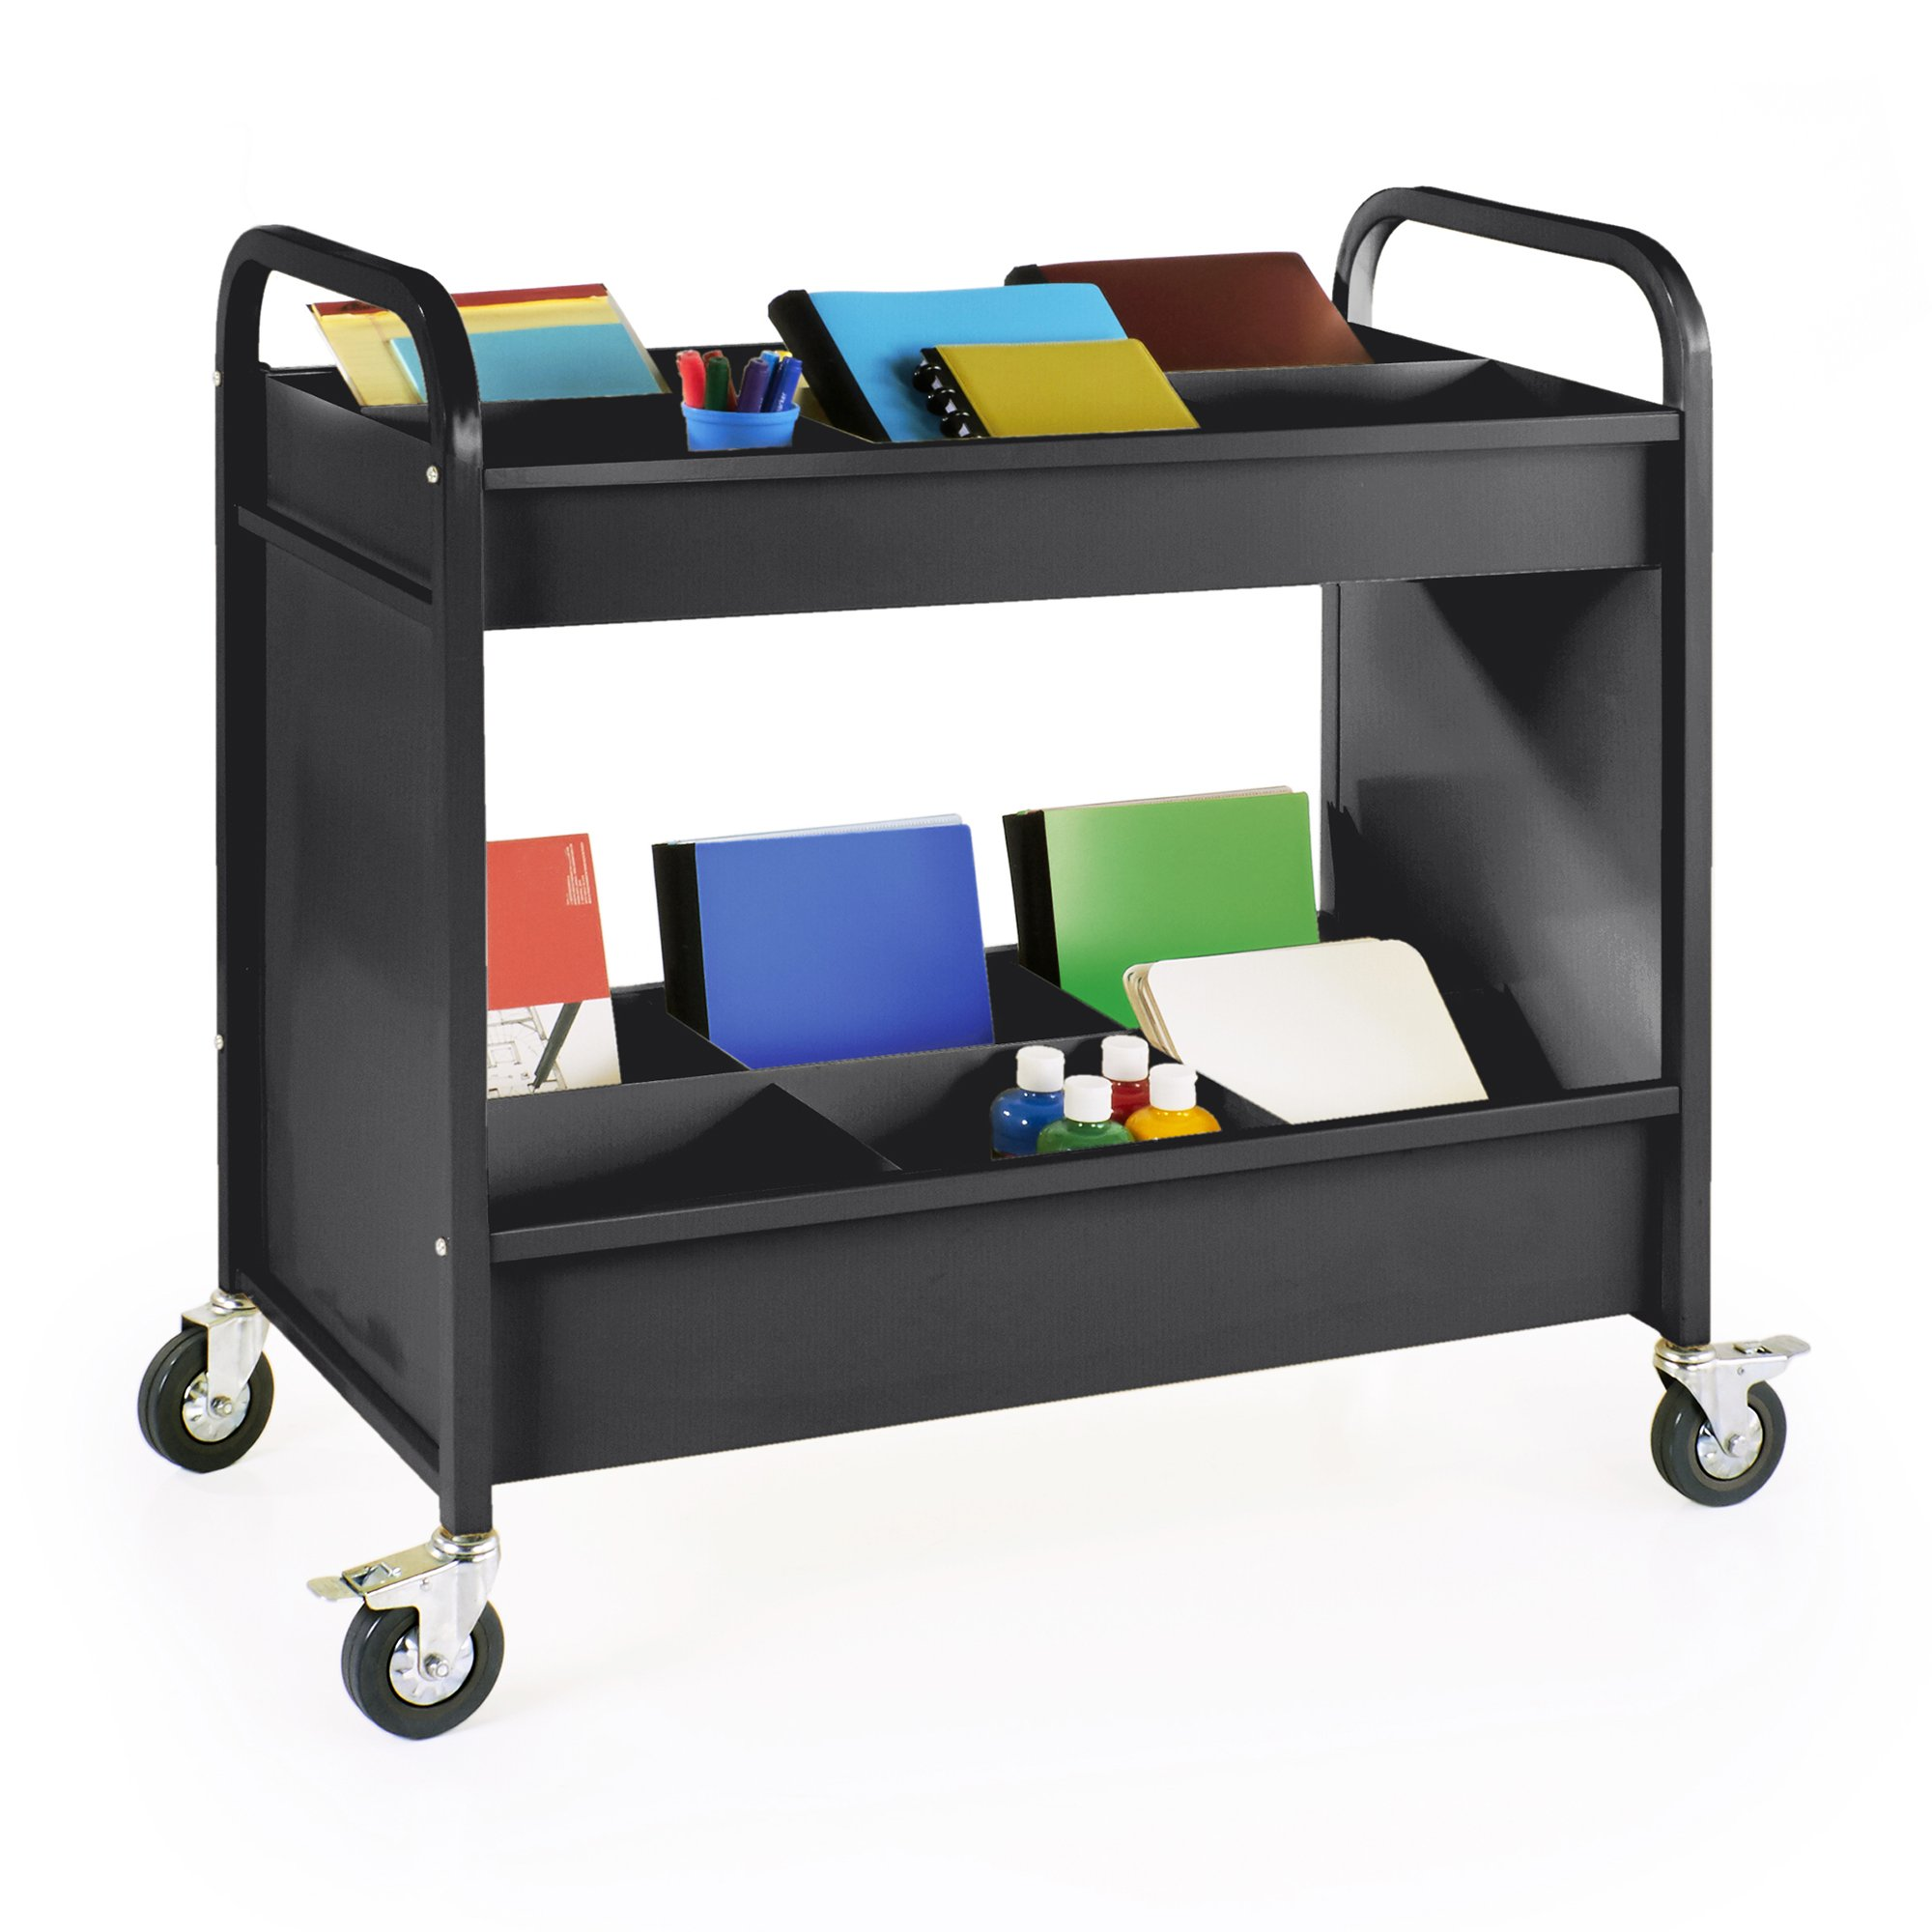 Heavy Duty 4-Wheel Everything Cart, Rolling 2-Shelf Metal Utility and Book Storage (Black), Office Furniture and School Supply by Guidecraft